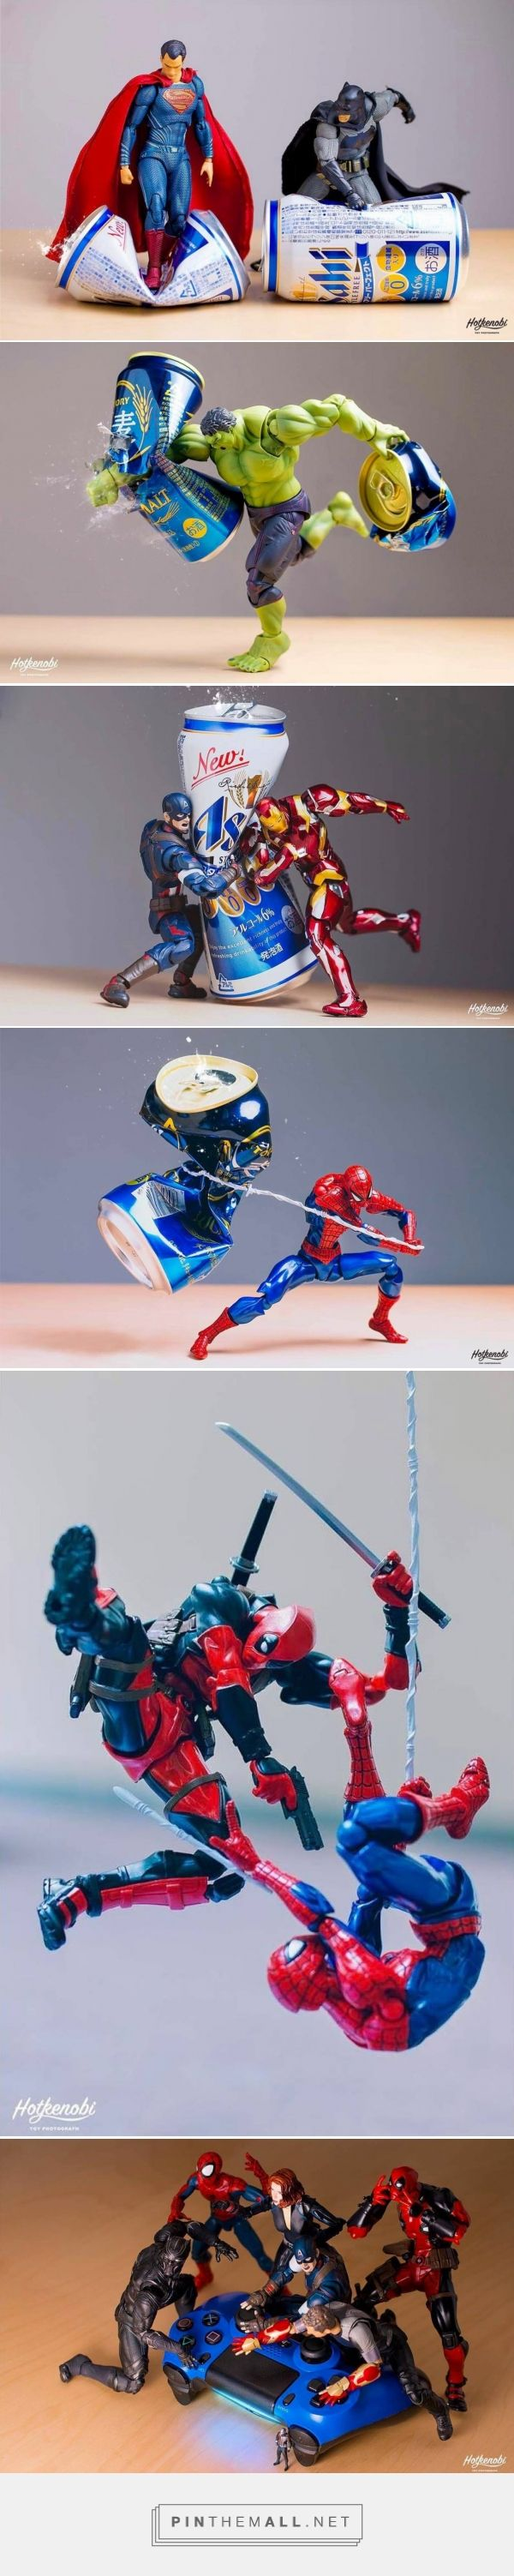 Superhéroes en miniatura